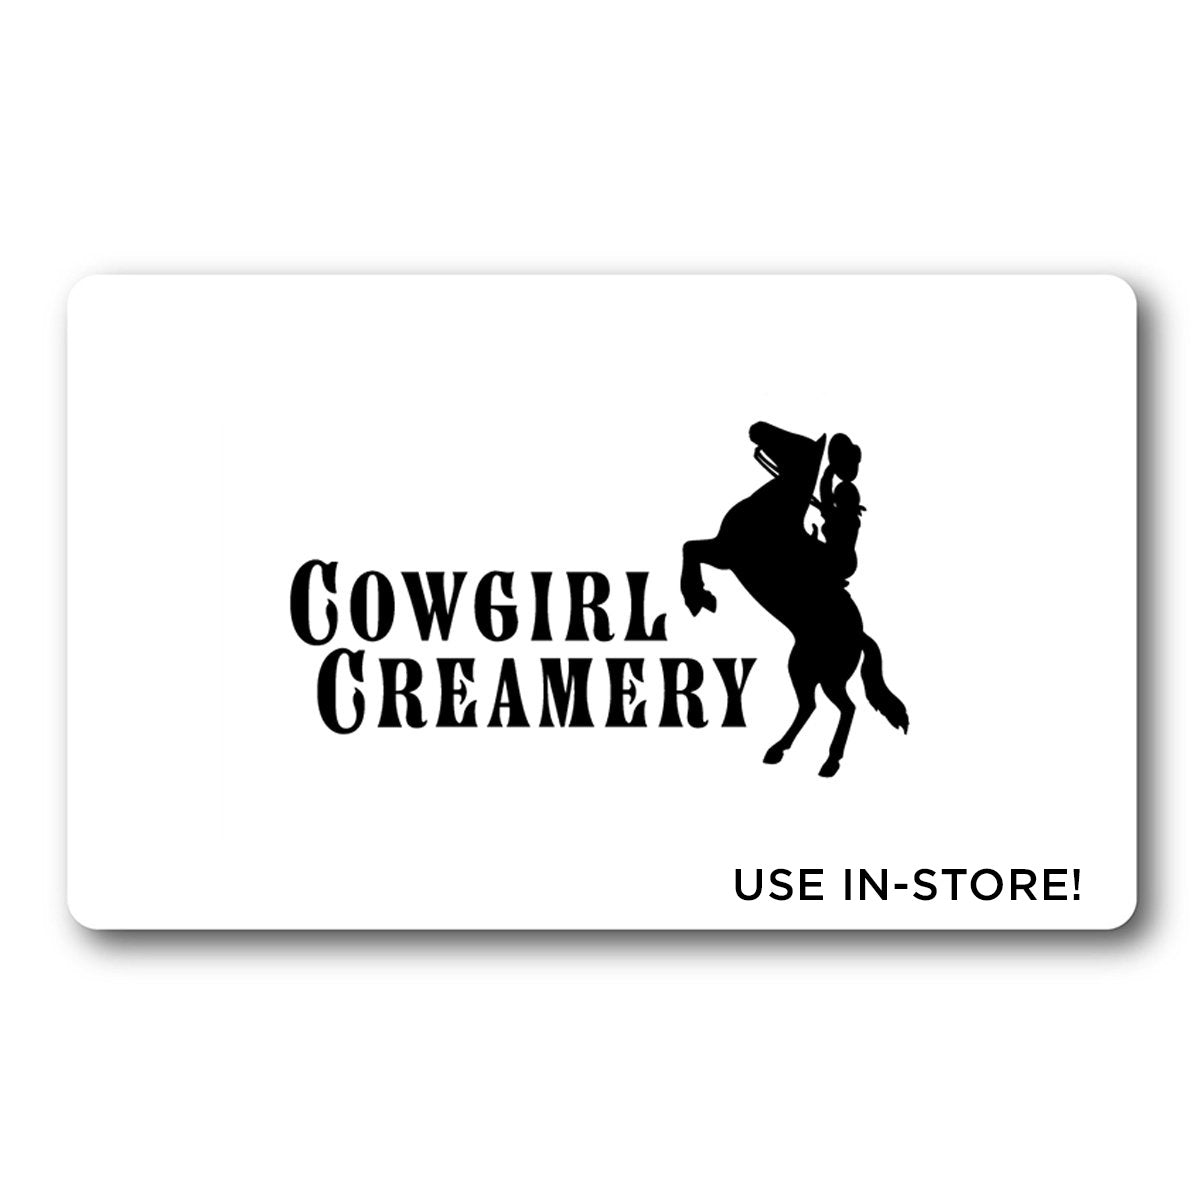 Cheese Shop Gift Card